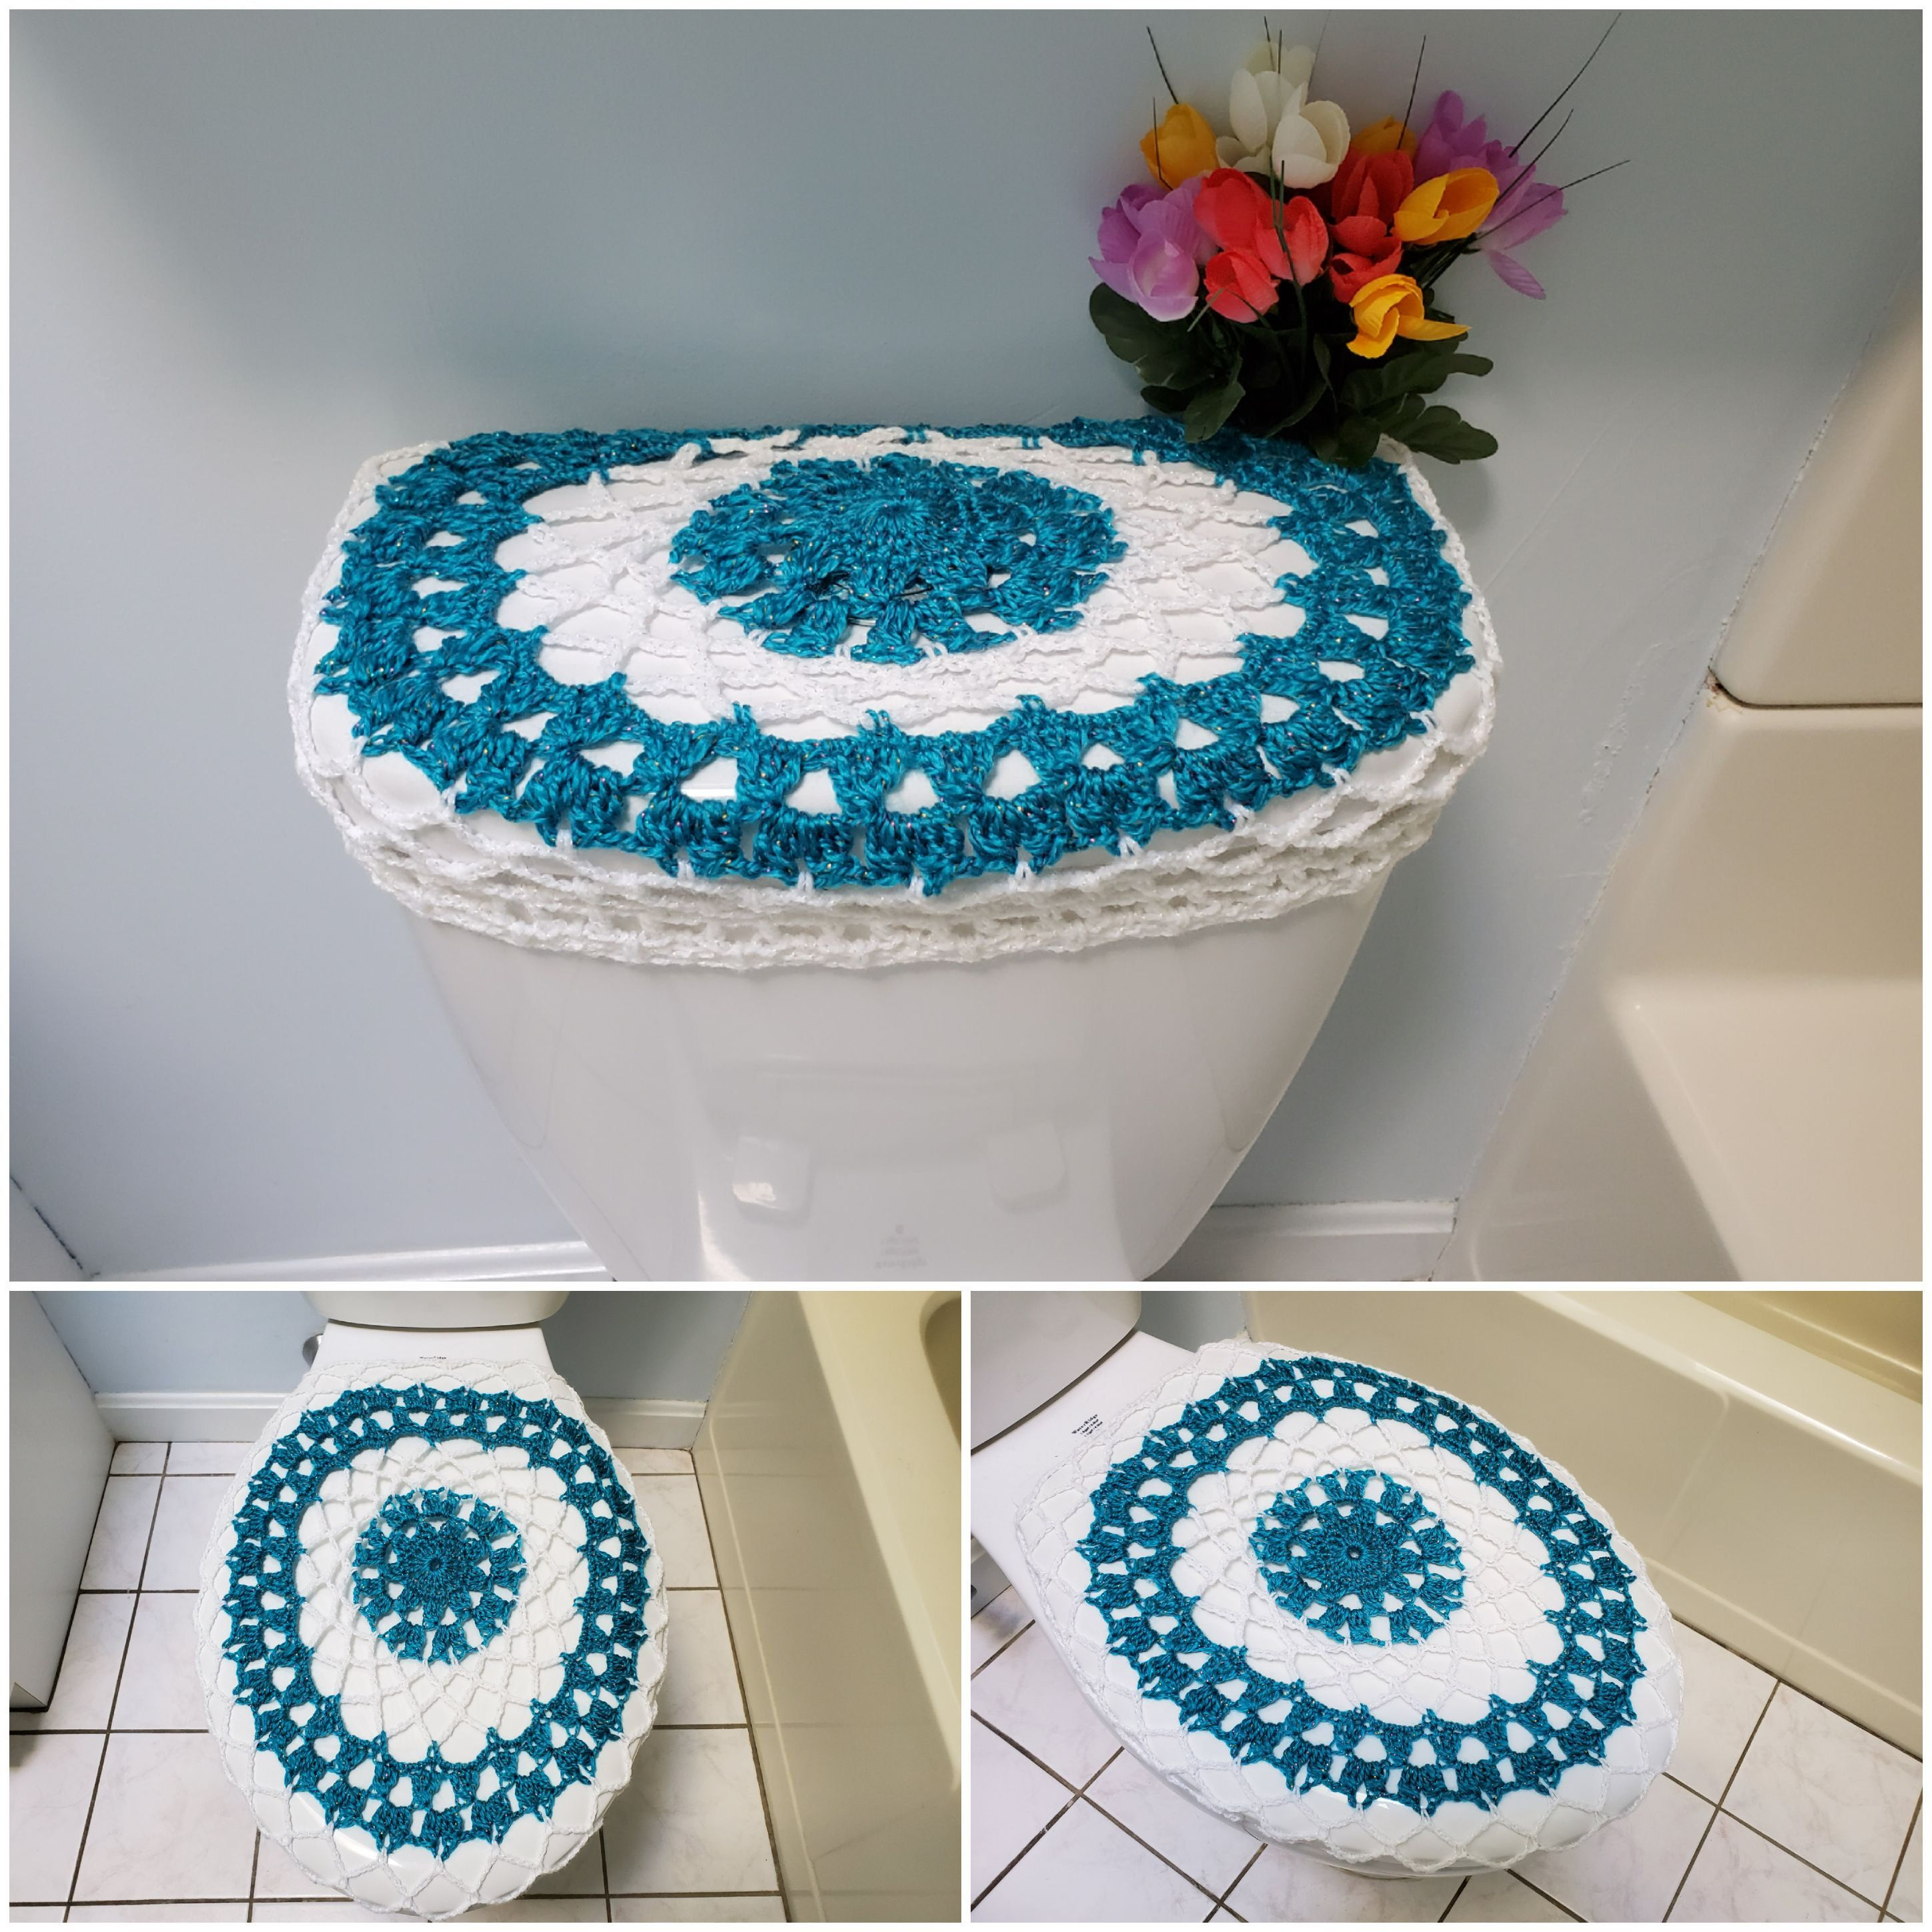 Crochet Toilet Seat Cover.Toilet Seat Covers Tank Lid Covers Crochet Toilet Seat